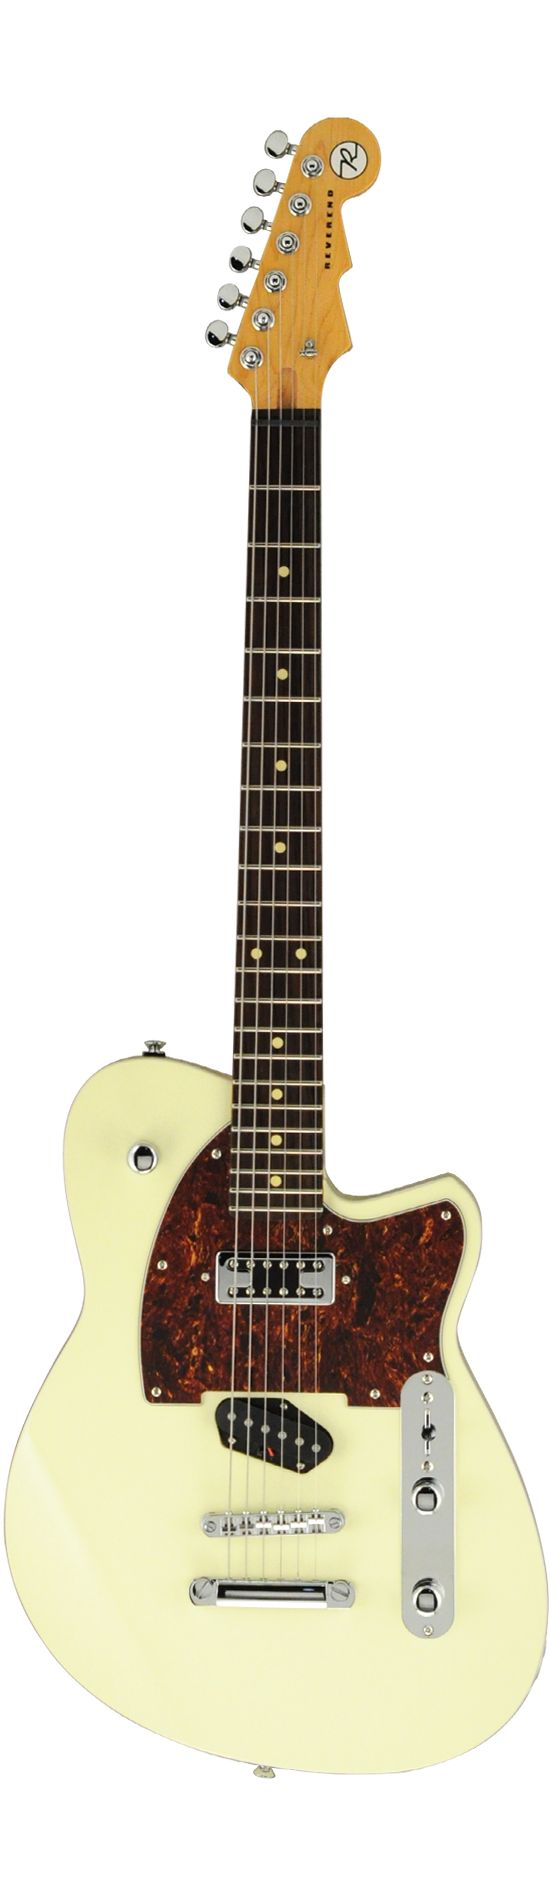 826 best beautiful instruments images on pinterest electric reverend guitars buckshot cream asfbconference2016 Image collections